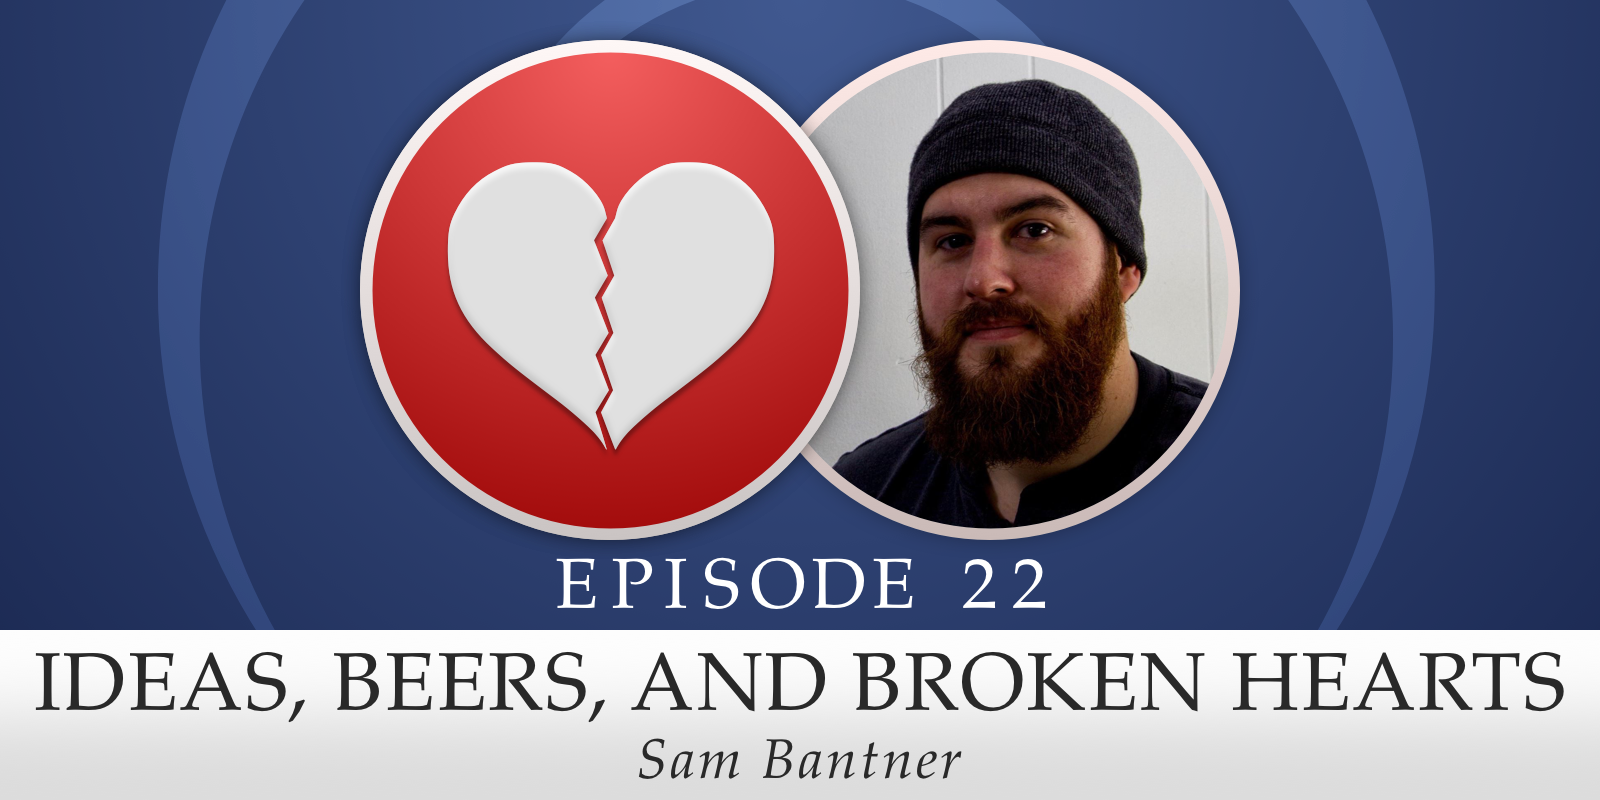 Episode 22: Ideas, Beers, and Broken Hearts